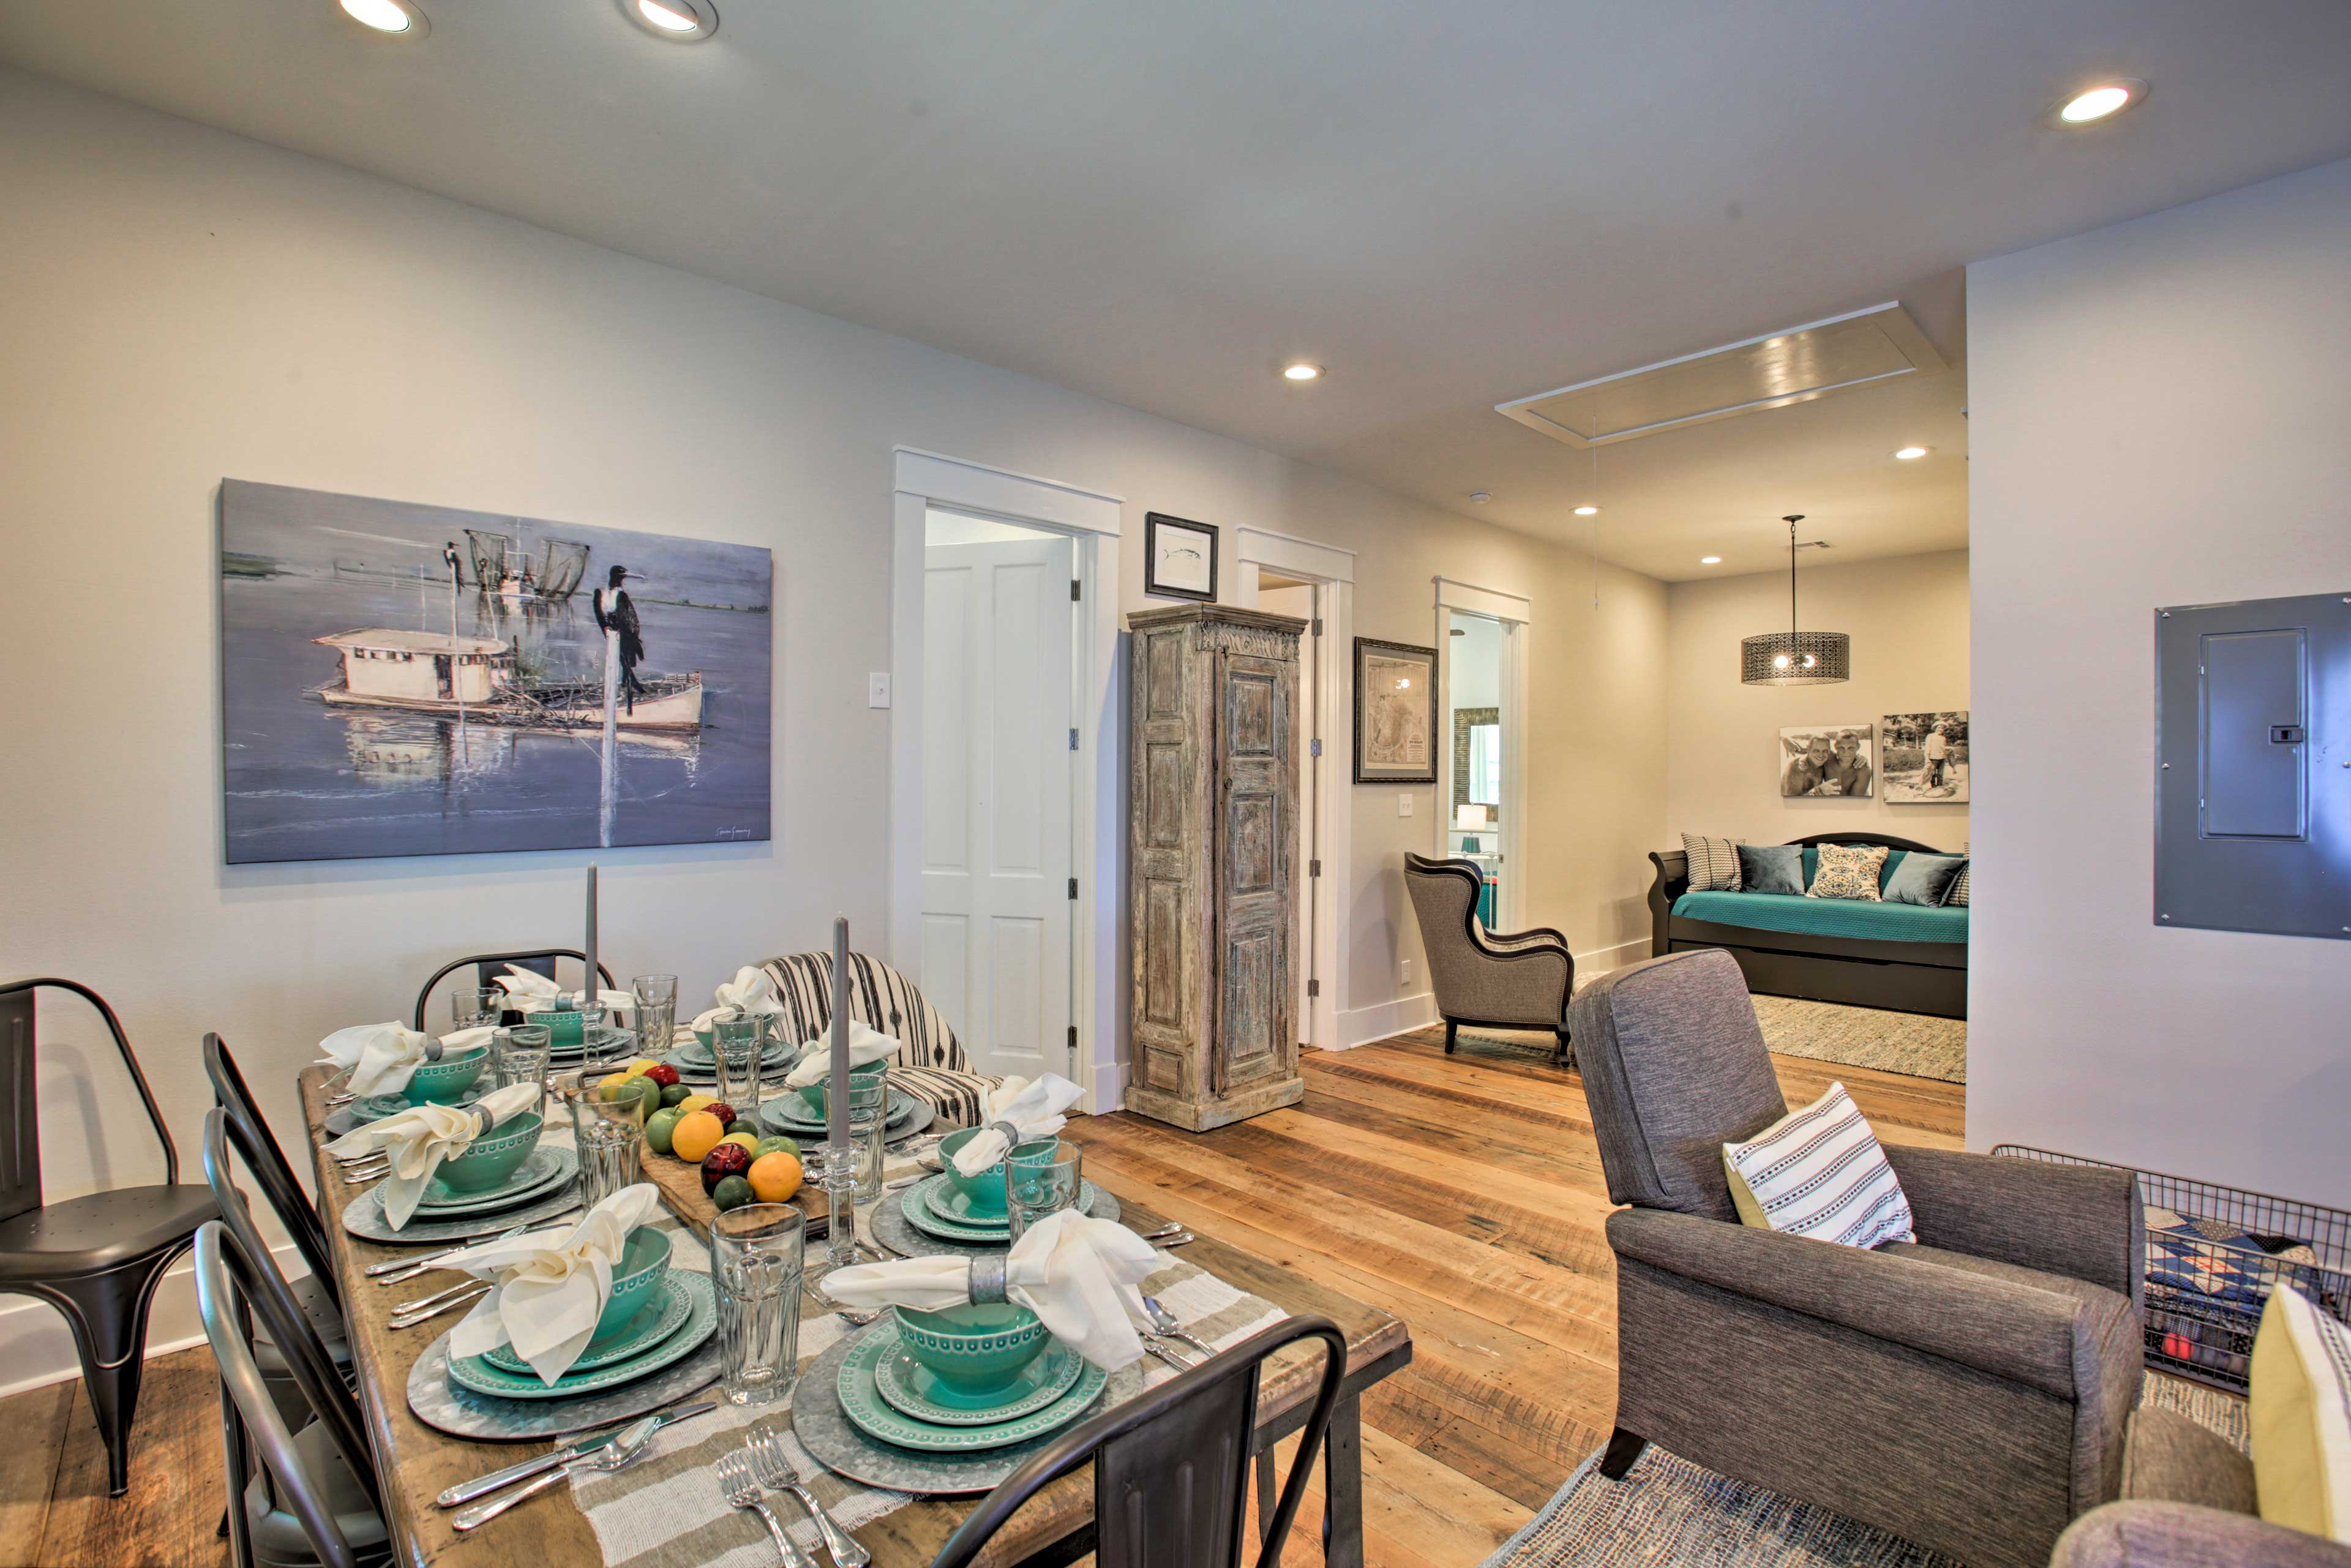 Savor your culinary creations at the 8-person dining table!